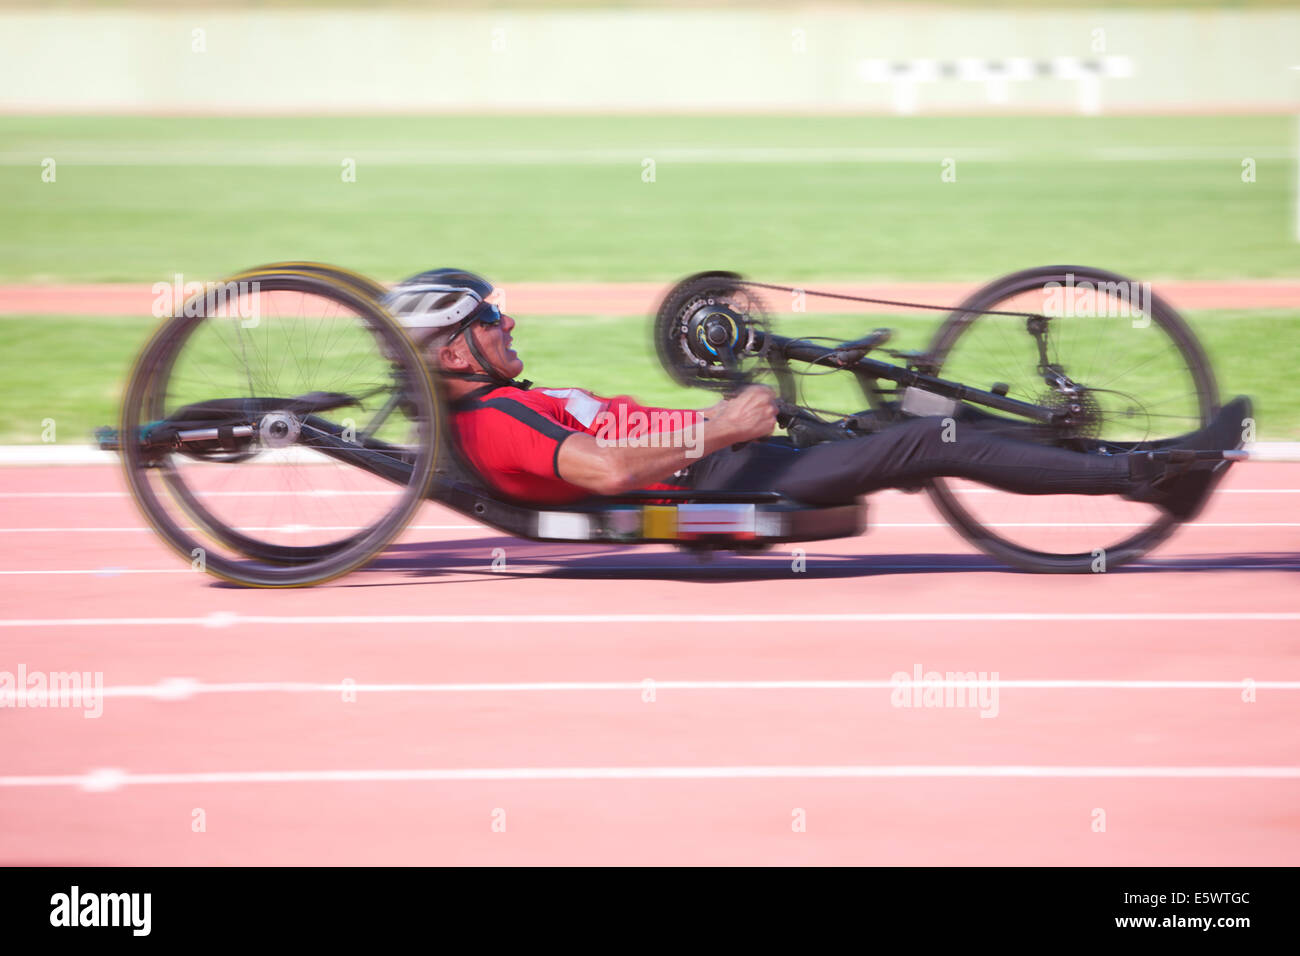 Cyclist in para-athletic competition - Stock Image